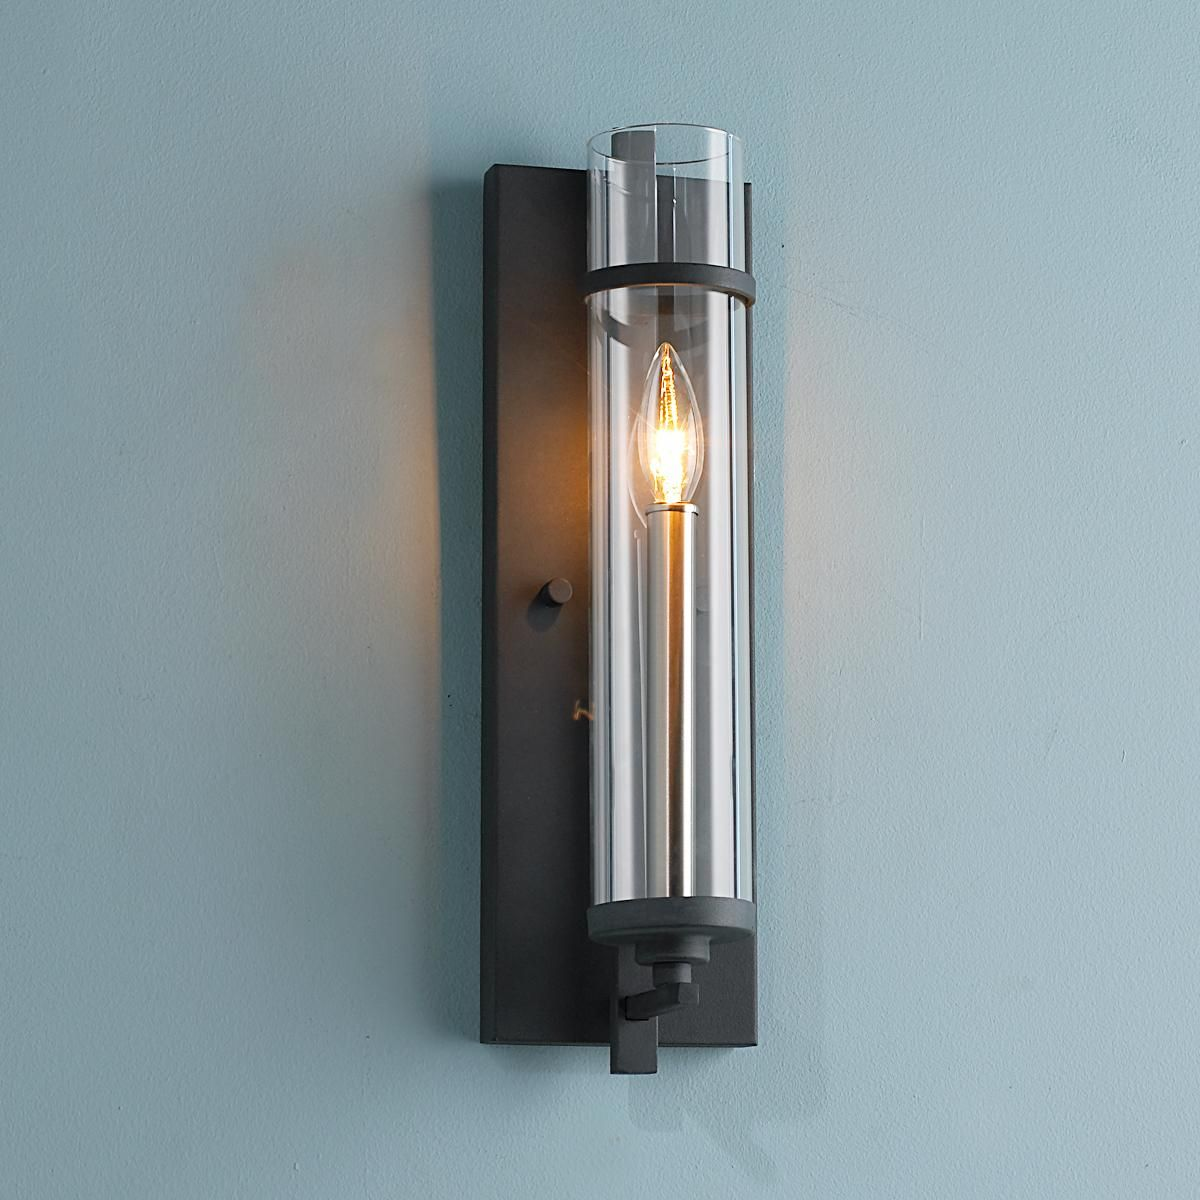 Clearly Modern Glass Tube Wall Sconce A Glass Cylinder Shines With Light As  Matte Charcoal Iron